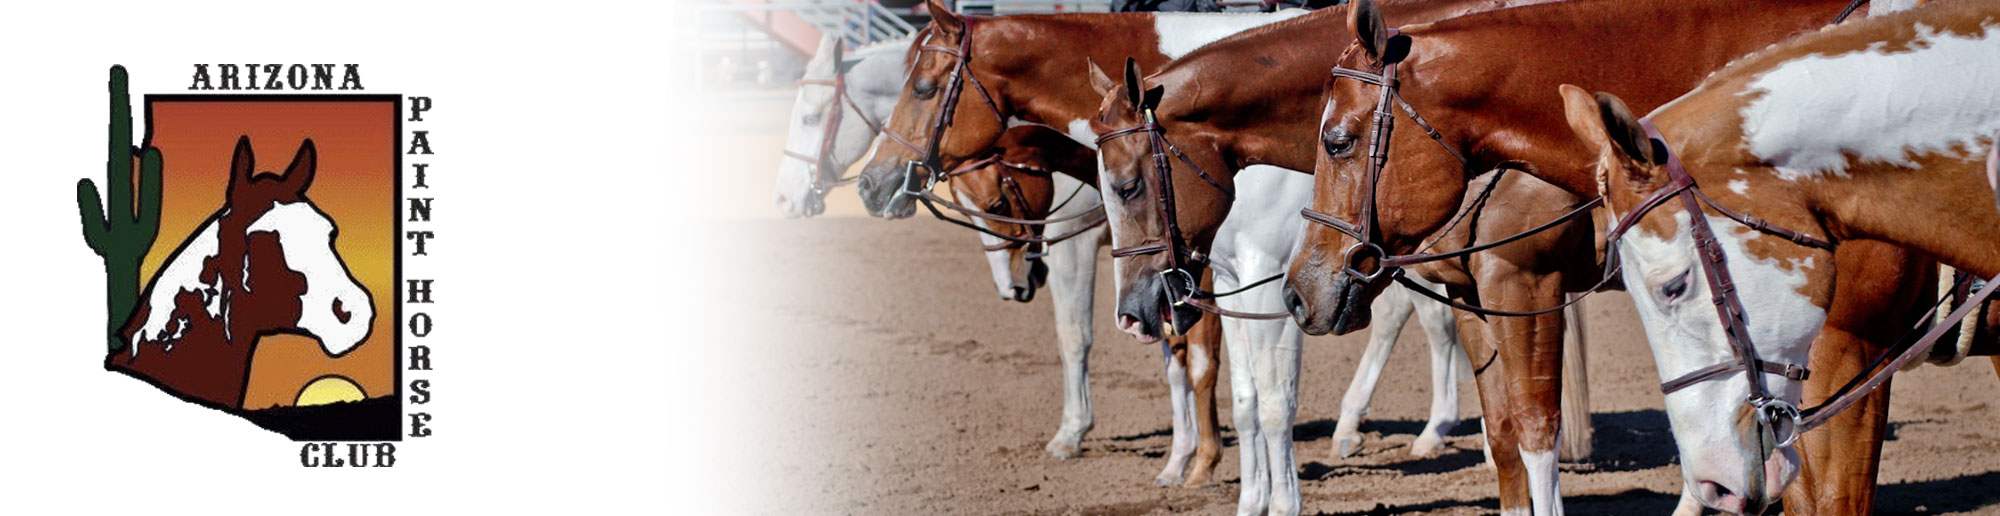 Arizona Paint Horse Club